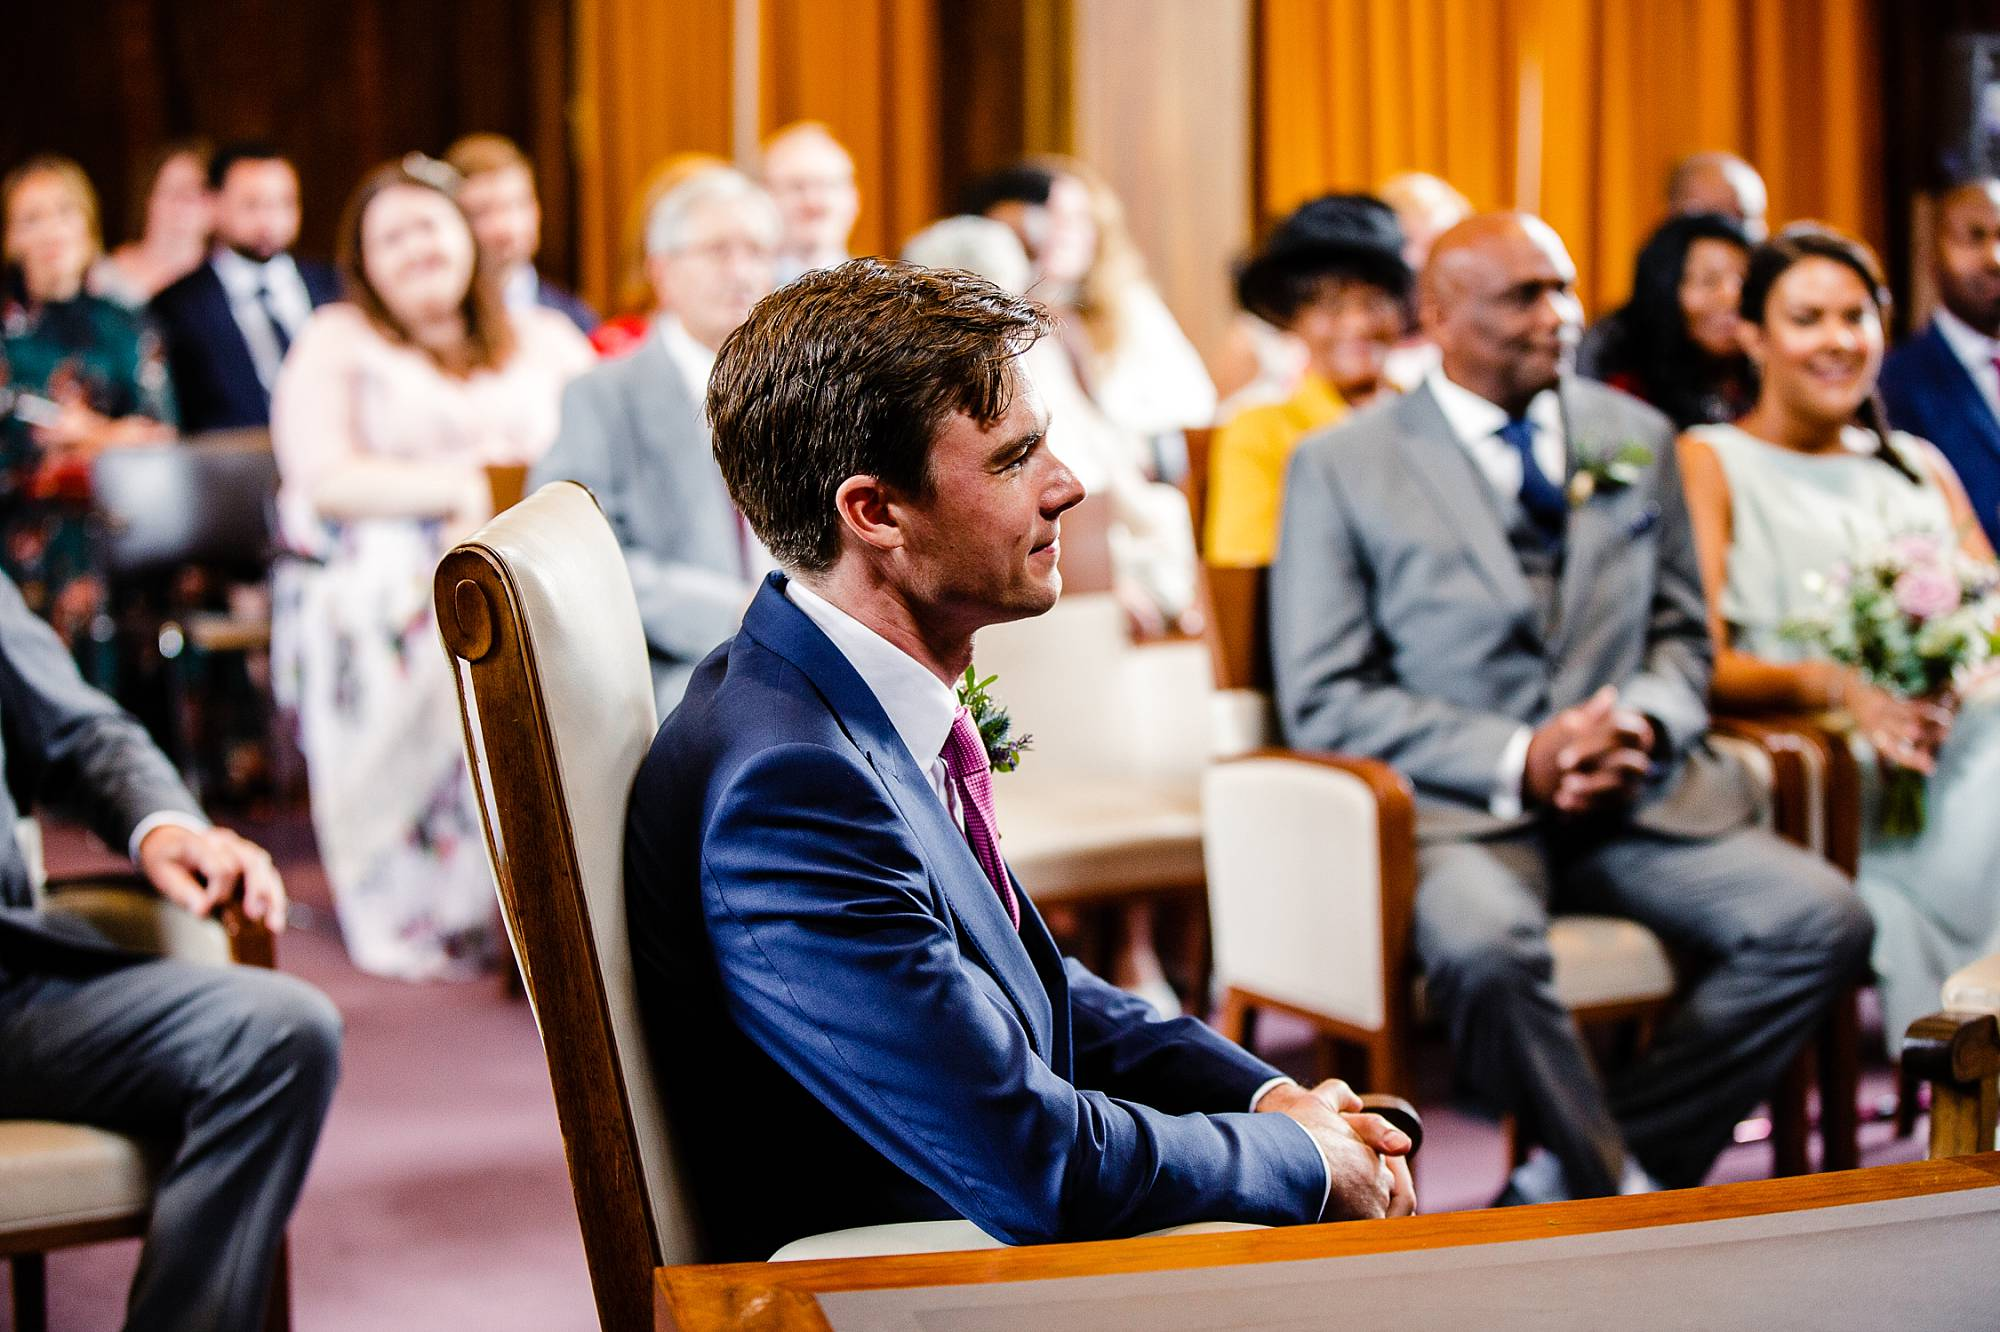 The Old Church London Wedding Photographer_0029.jpg